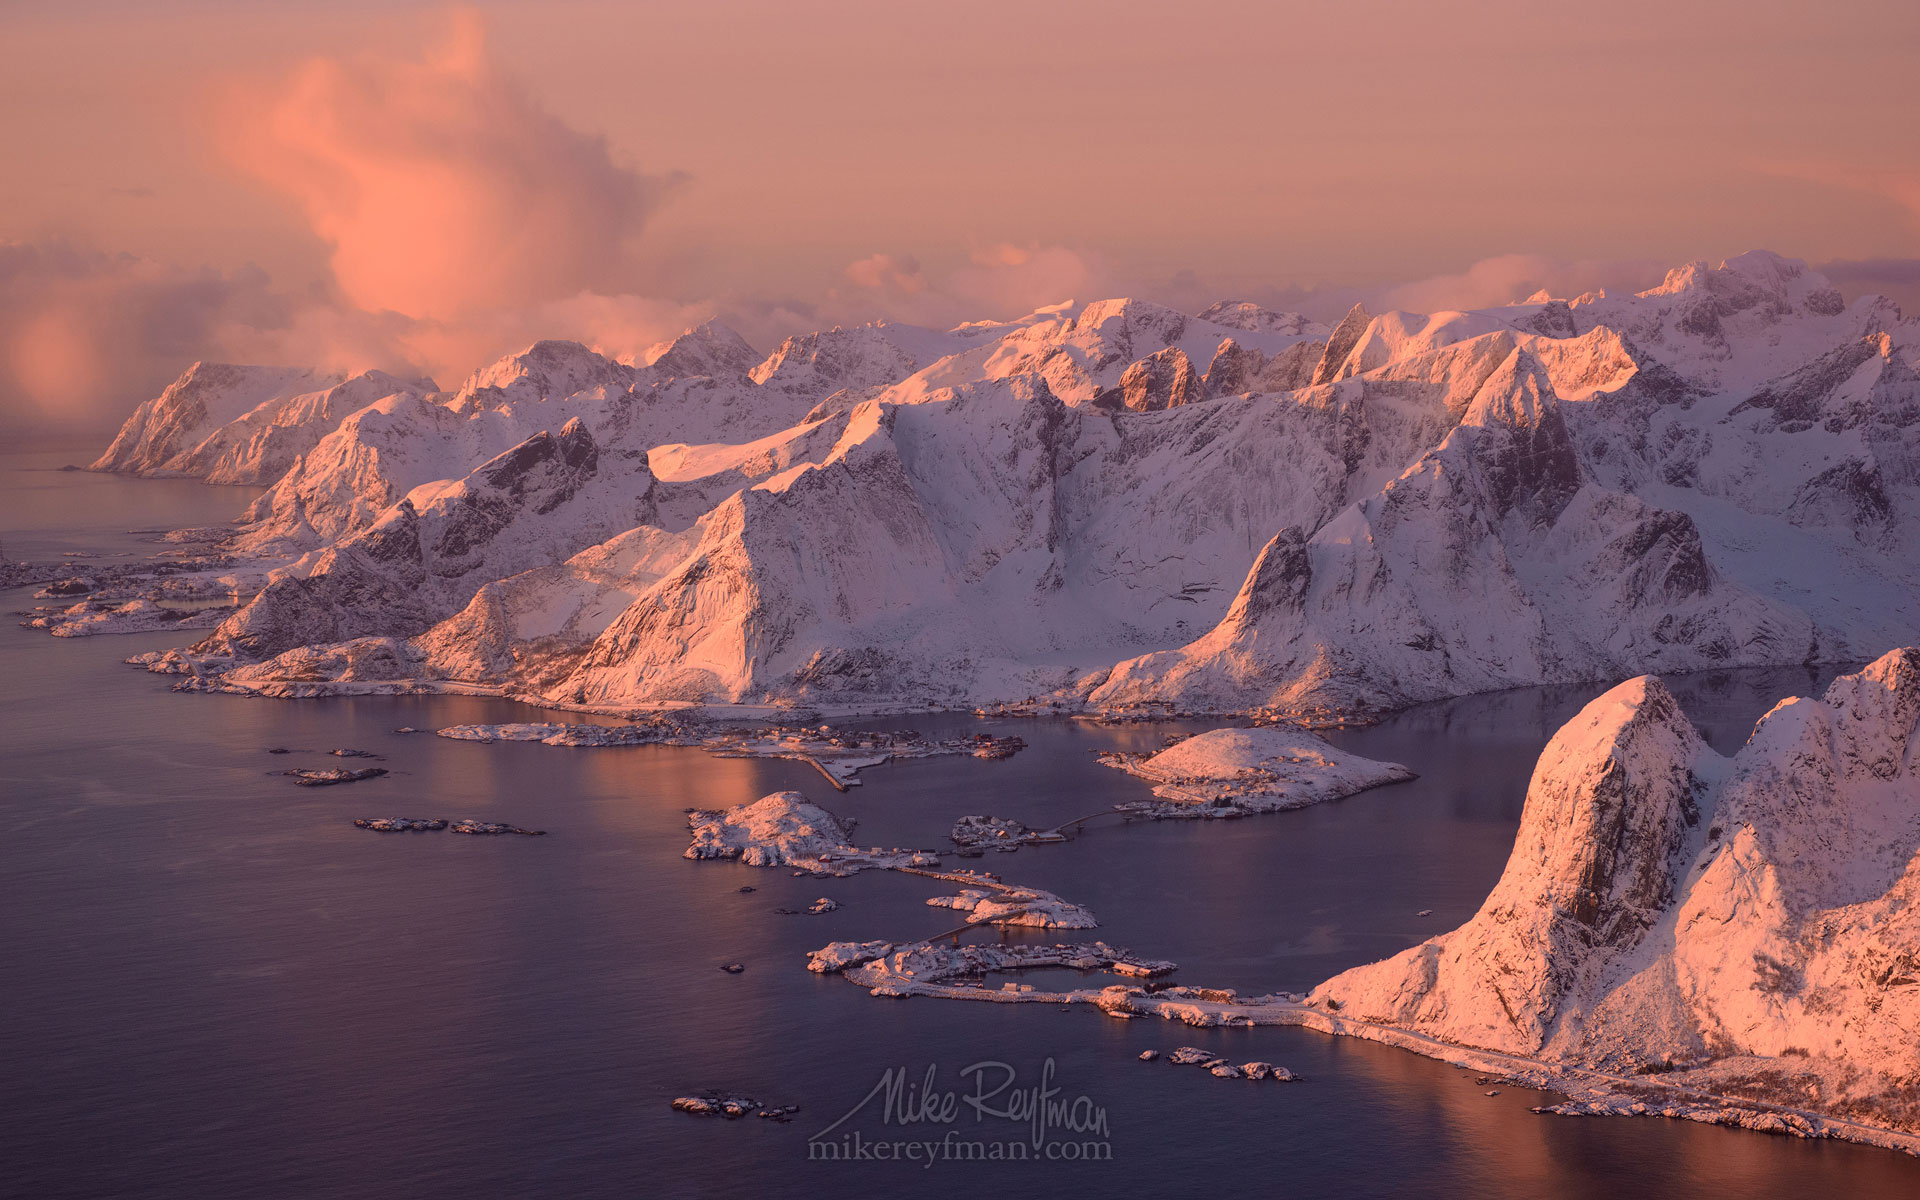 Aerial view of Lofoten archipelago and fishing village of Reine at sunrise. Moskenes, Lofoten archipelago, Norway. LF-MRD1E1458 - Lofoten Archipelago in Winter, Arctic Norway - Mike Reyfman Photography